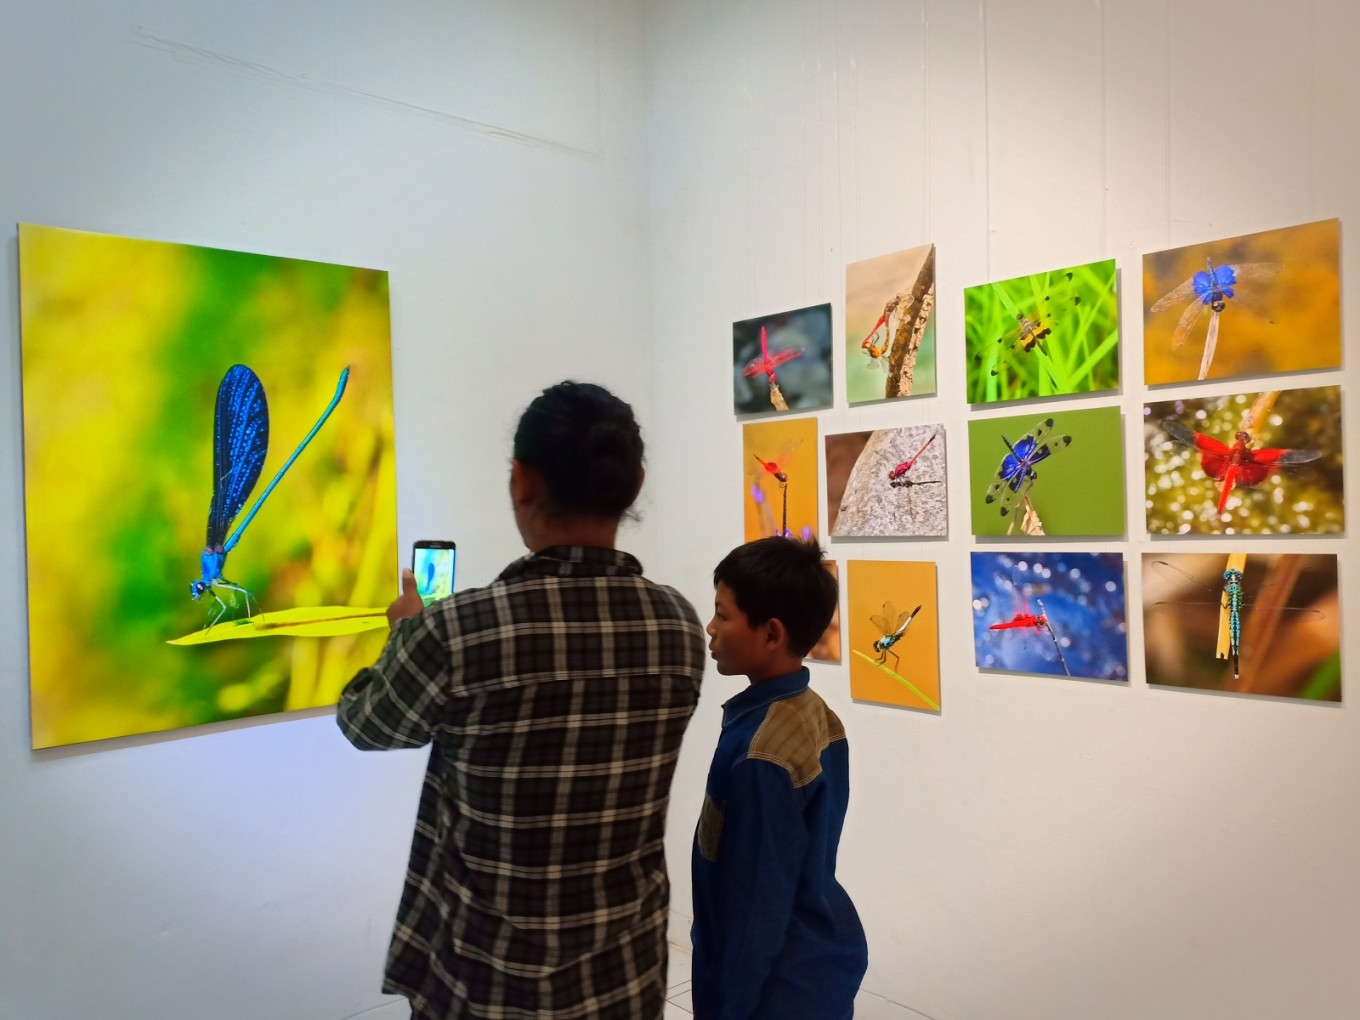 Enter the dragonfly: Wahyu Sigit Rahadi blends art, science in Yogya exhibit